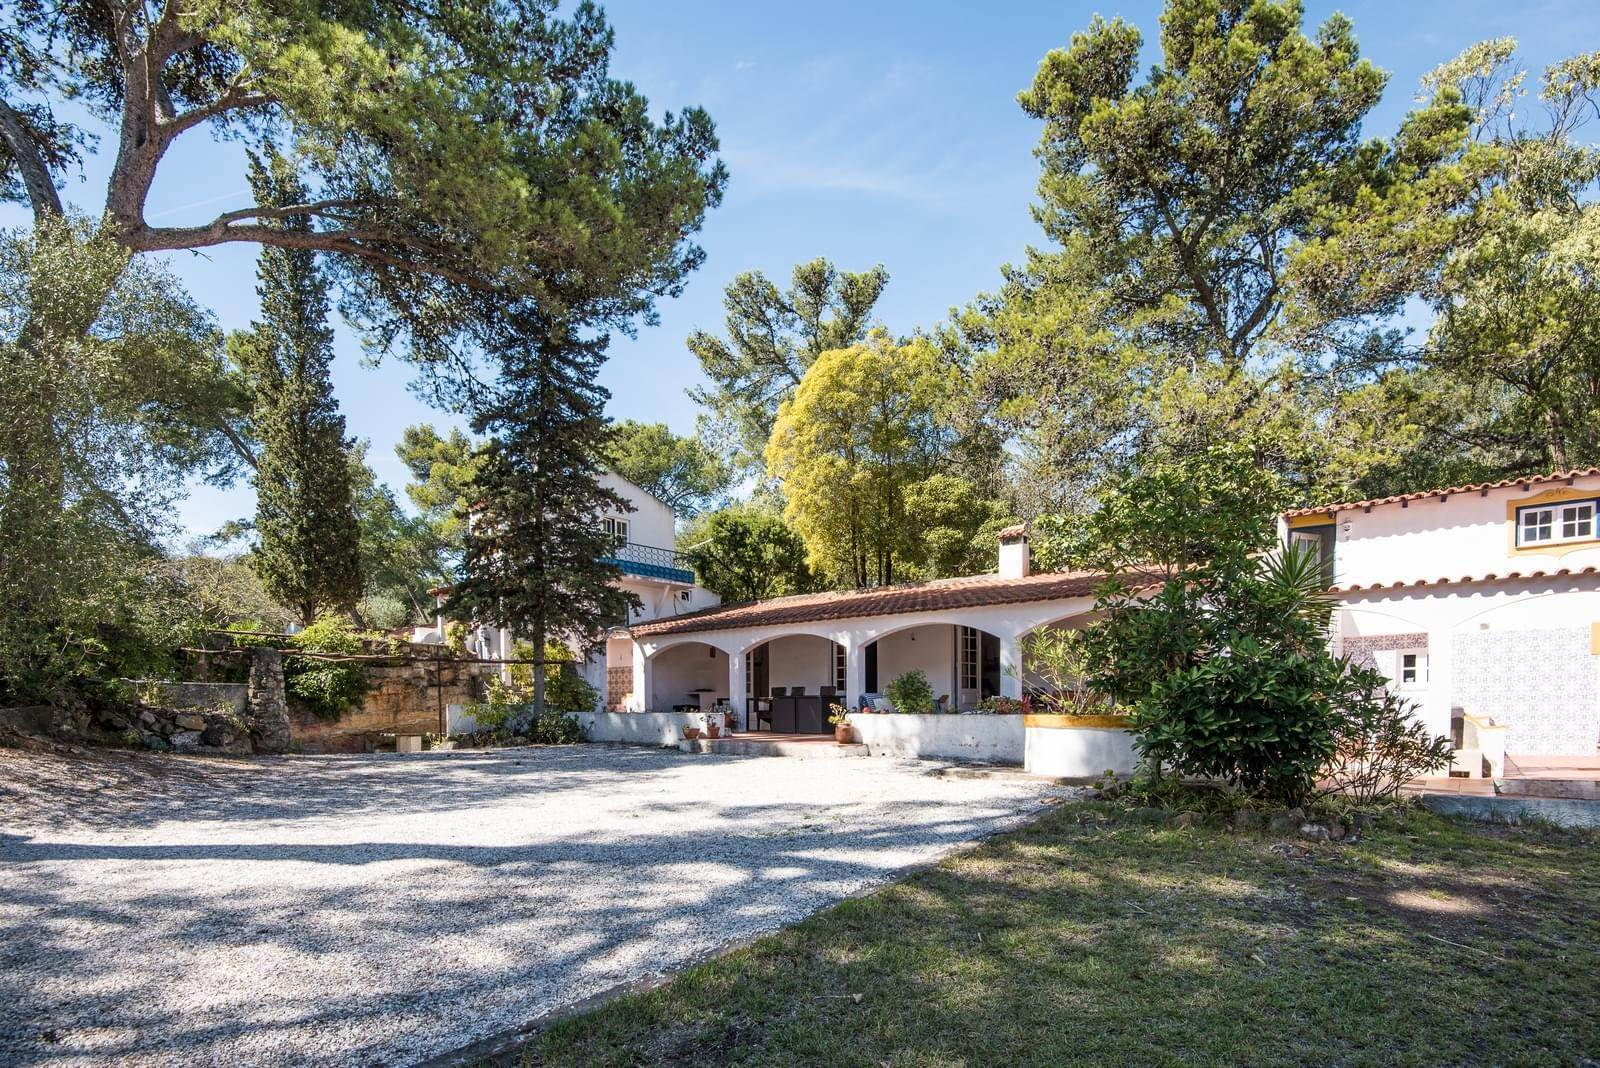 13. 別墅 / 联排别墅 為 出售 在 Unique property, located next to Quinta da Marinha, a quiet area.The property comprises six small villas, with deep refu... Cascais, 葡萄牙